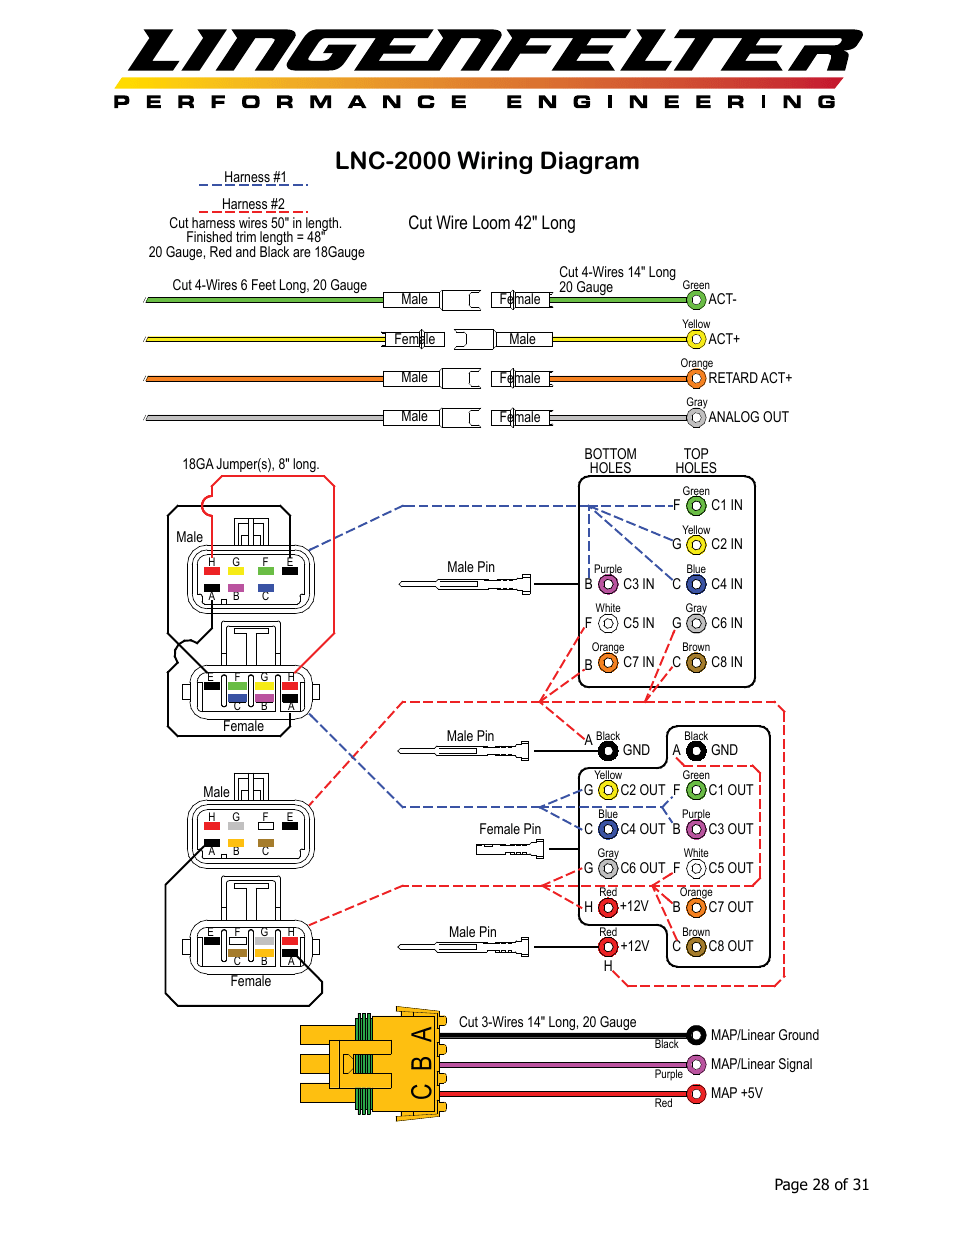 Ab C Lnc Wiring Diagram Cut Wire Loom 42 Long